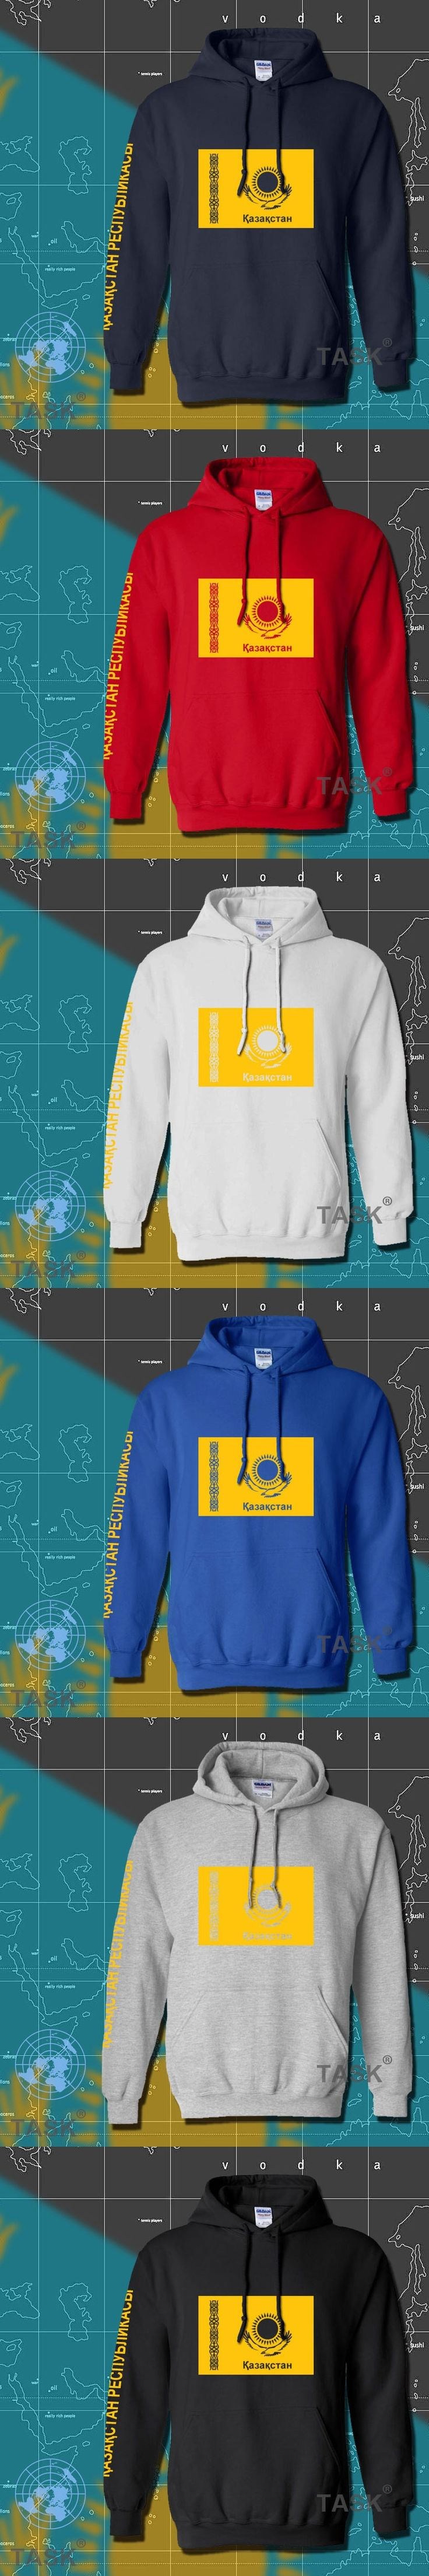 Kazakhstan hoodies men sweatshirt sweat new streetwear gyms meeting tracksuit nation Kazakh flag Kazakhstani KZ KAZ Qazaqstan 3